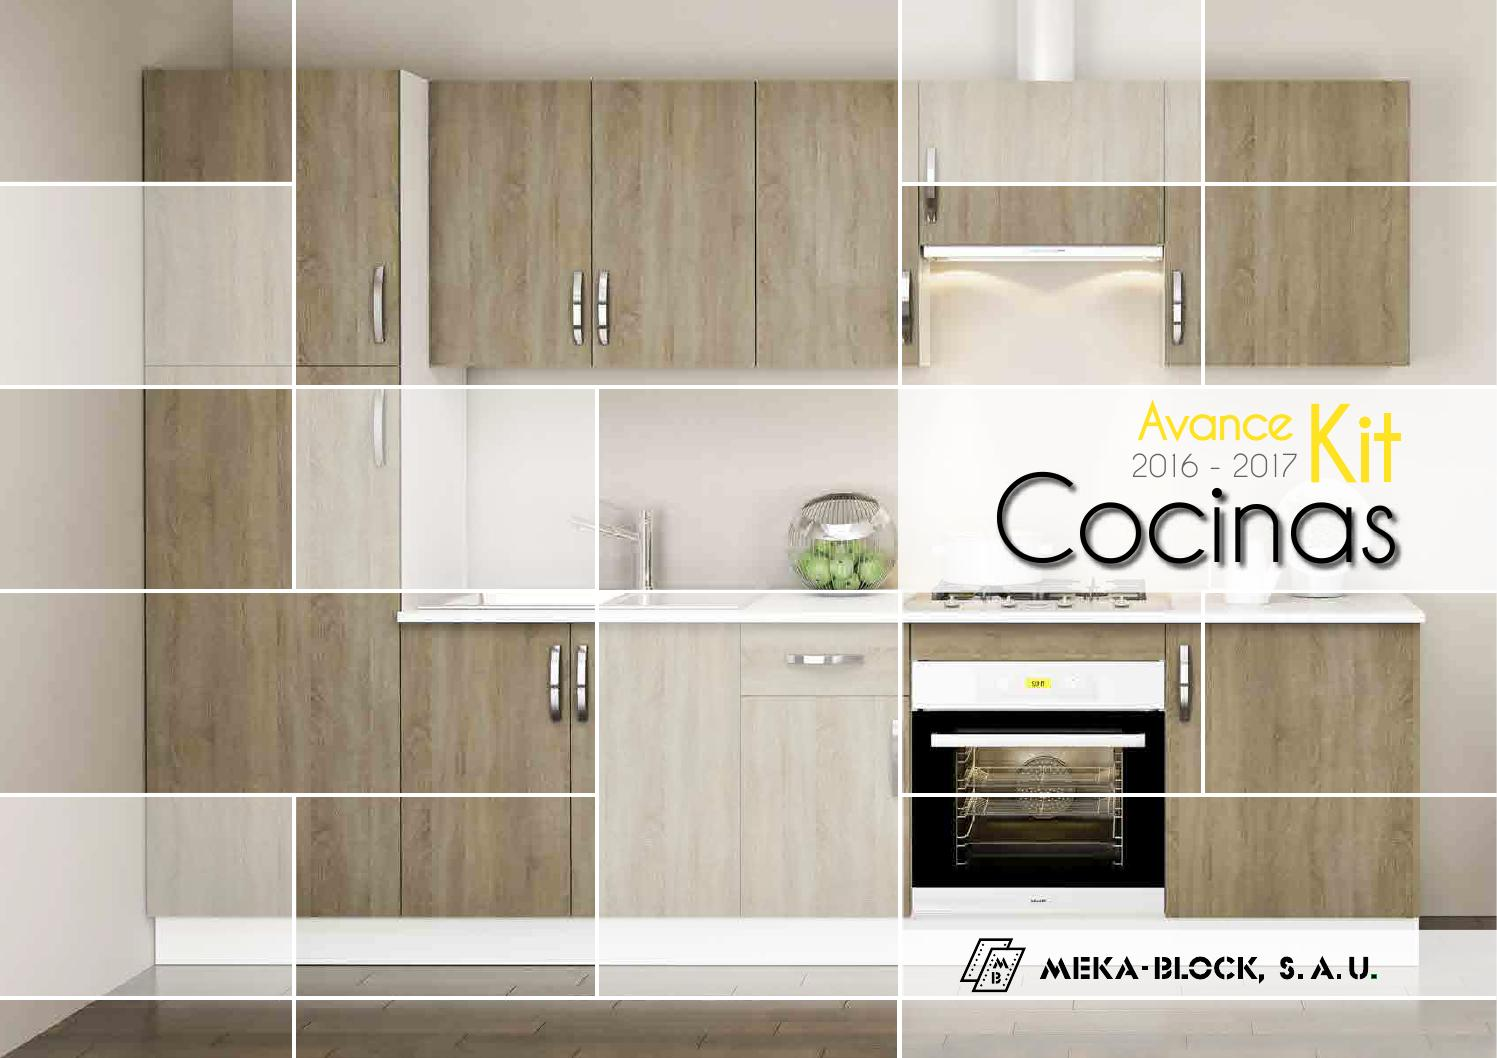 Avance catalogo cocinas 2016 2017 de meka block by meka block web issuu - Muebles edem catalogo 2017 ...